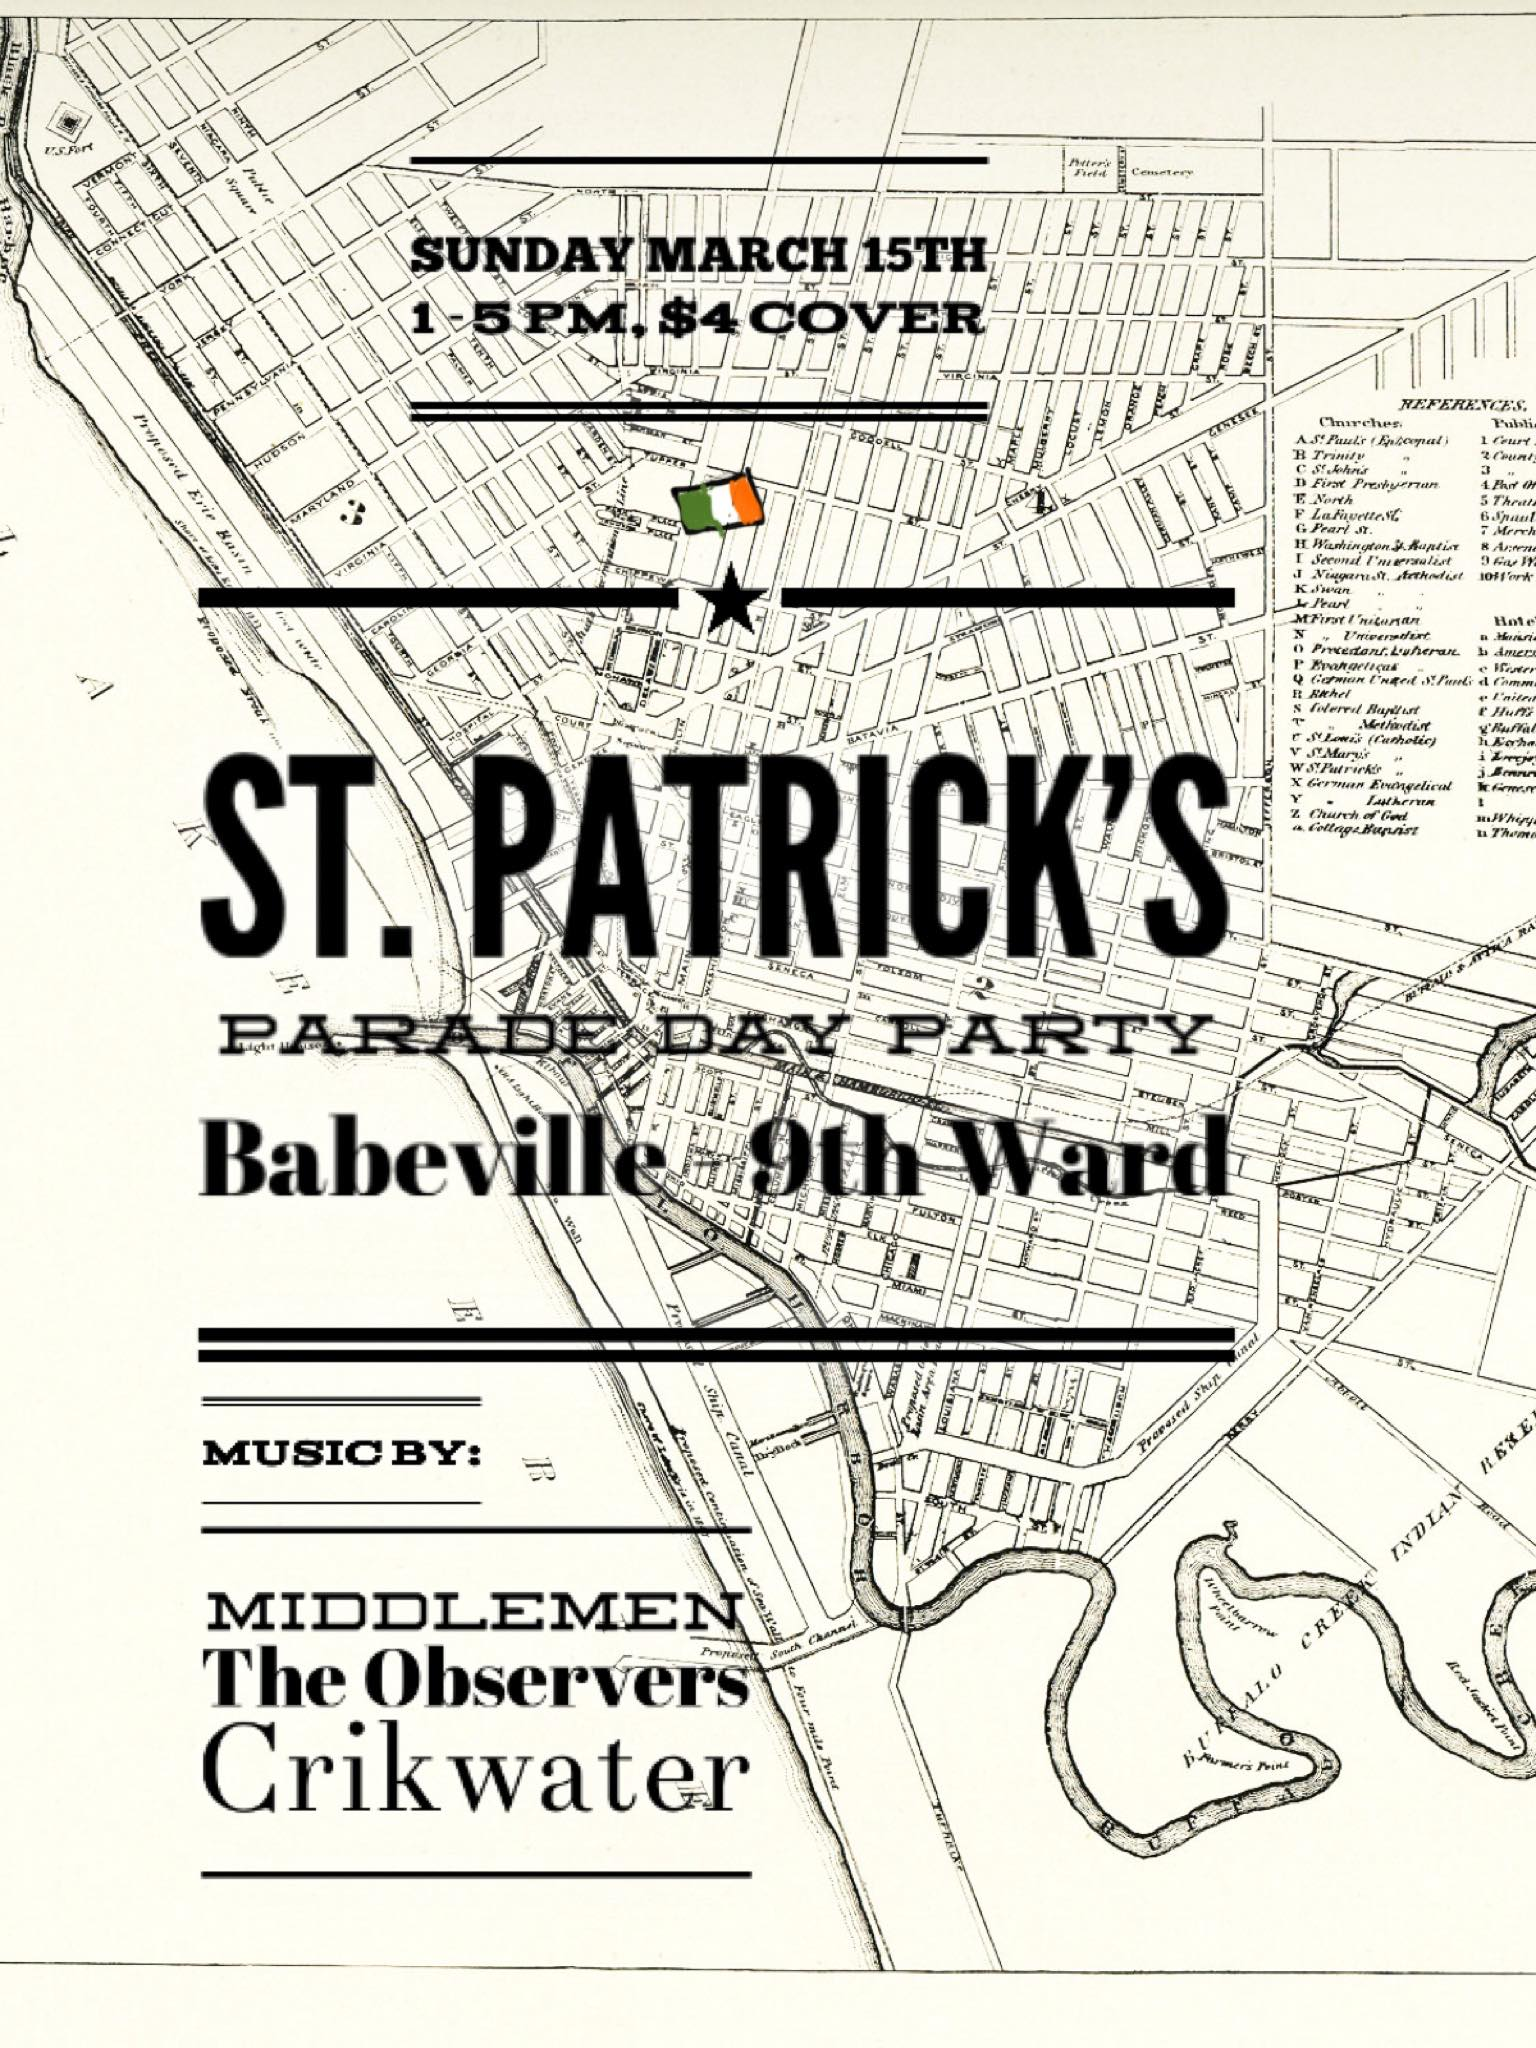 *CANCELED* St Patrick's Day Parade with Crikwater, The Observers, and Middlemen